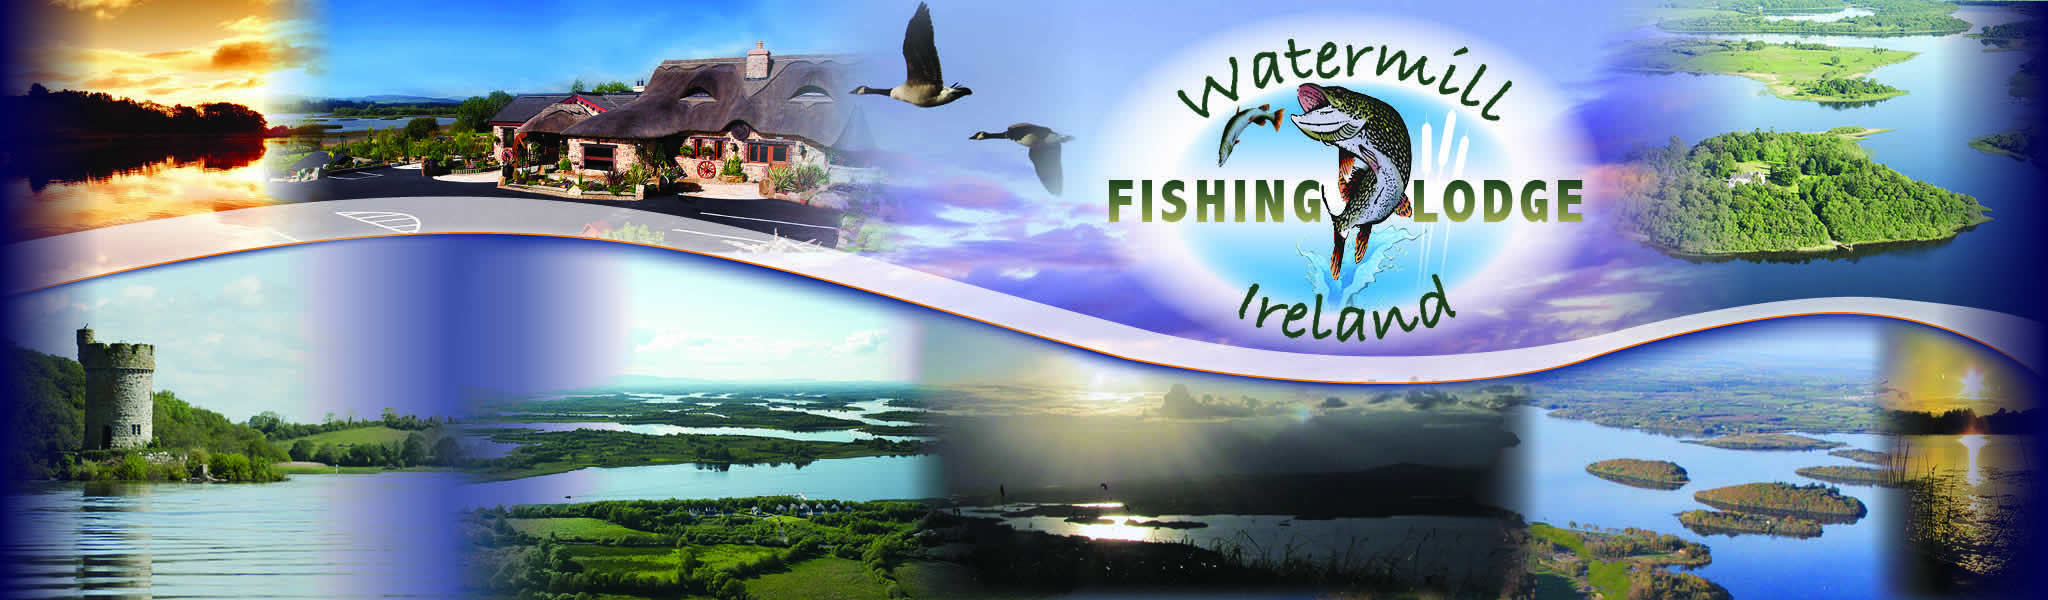 til_fishing_ireland